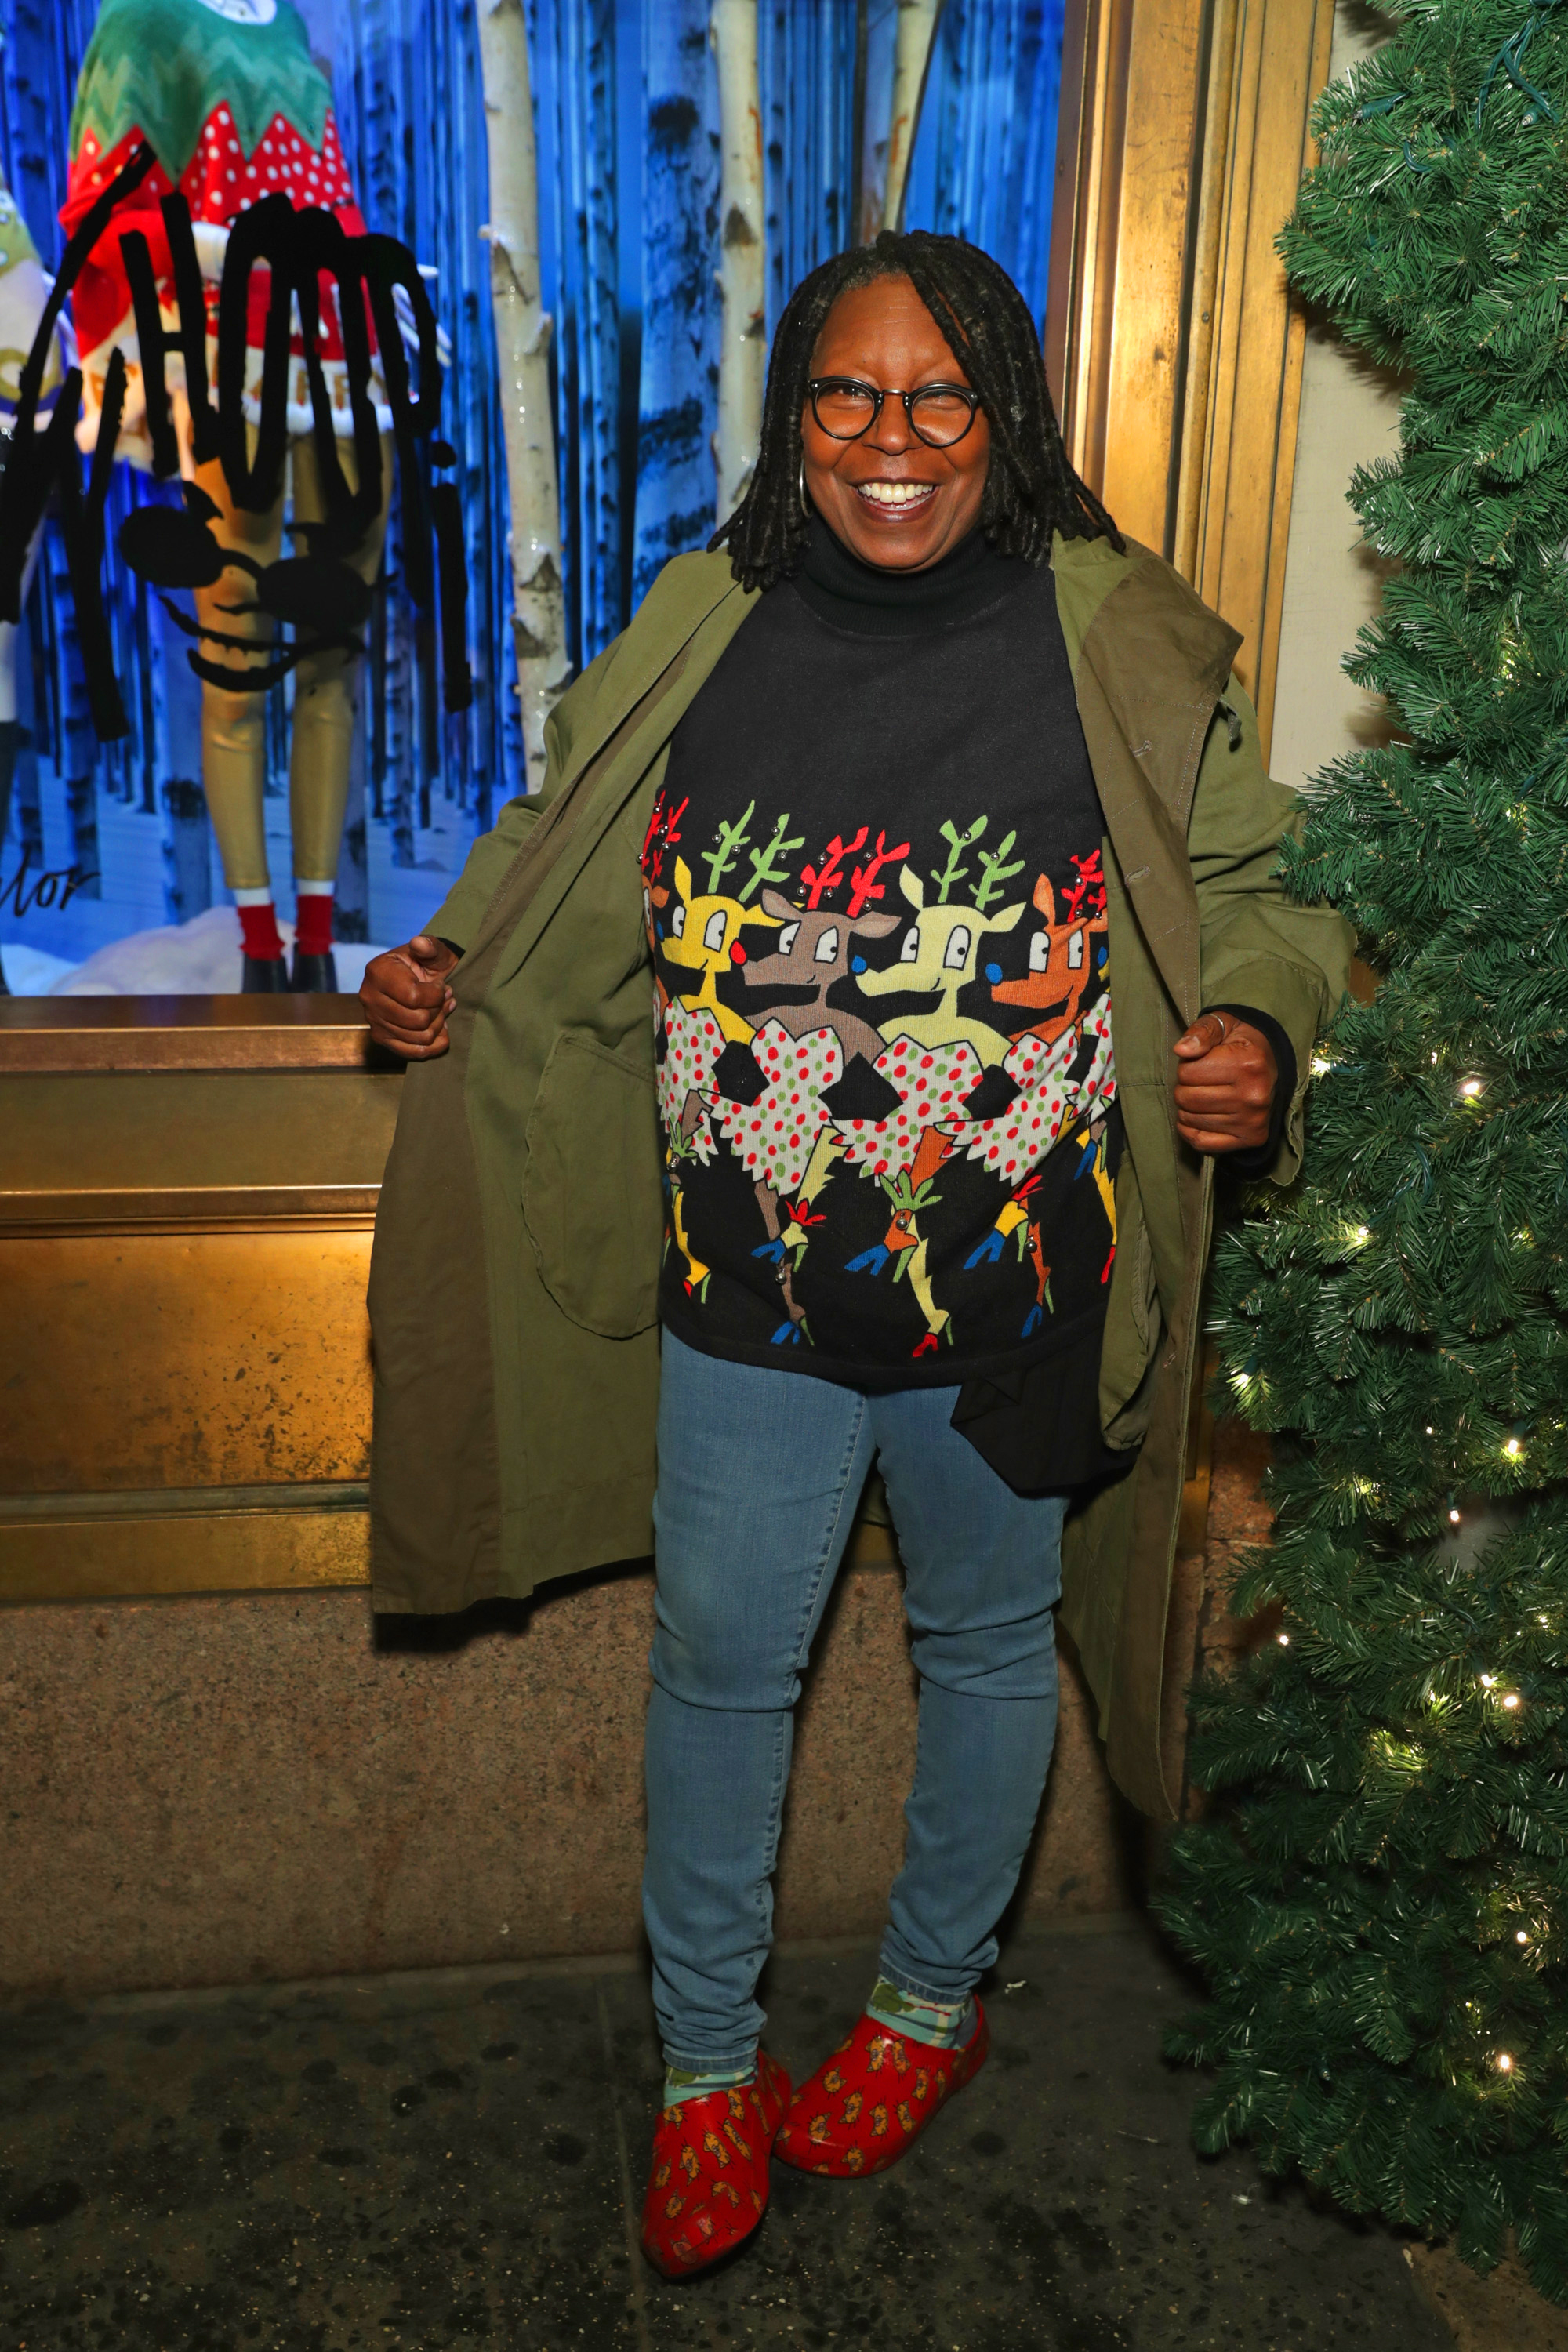 """celebrity ugly christmas sweater - 96 Normal 0 false false false EN-US X-NONE X-NONE /* Style Definitions */ table. MsoNormalTable {mso-style-name:""""Table Normal""""; mso-tstyle-rowband-size:0; mso-tstyle-colband-size:0; mso-style-noshow:yes; mso-style-priority:99; mso-style-parent:""""""""; mso-padding-alt:0in 5.4pt 0in 5.4pt; mso-para-margin:0in; mso-para-margin-bottom:.0001pt; mso-pagination:widow-orphan; font-size:12.0pt; font-family:""""Calibri"""",sans-serif; mso-ascii-font-family:Calibri; mso-ascii-theme-font:minor-latin; mso-hansi-font-family:Calibri; mso-hansi-theme-font:minor-latin;} The View cohost loves ugly Christmas sweaters so much that she has her own collection available at Lord & Taylor and Hudson's Bay!"""